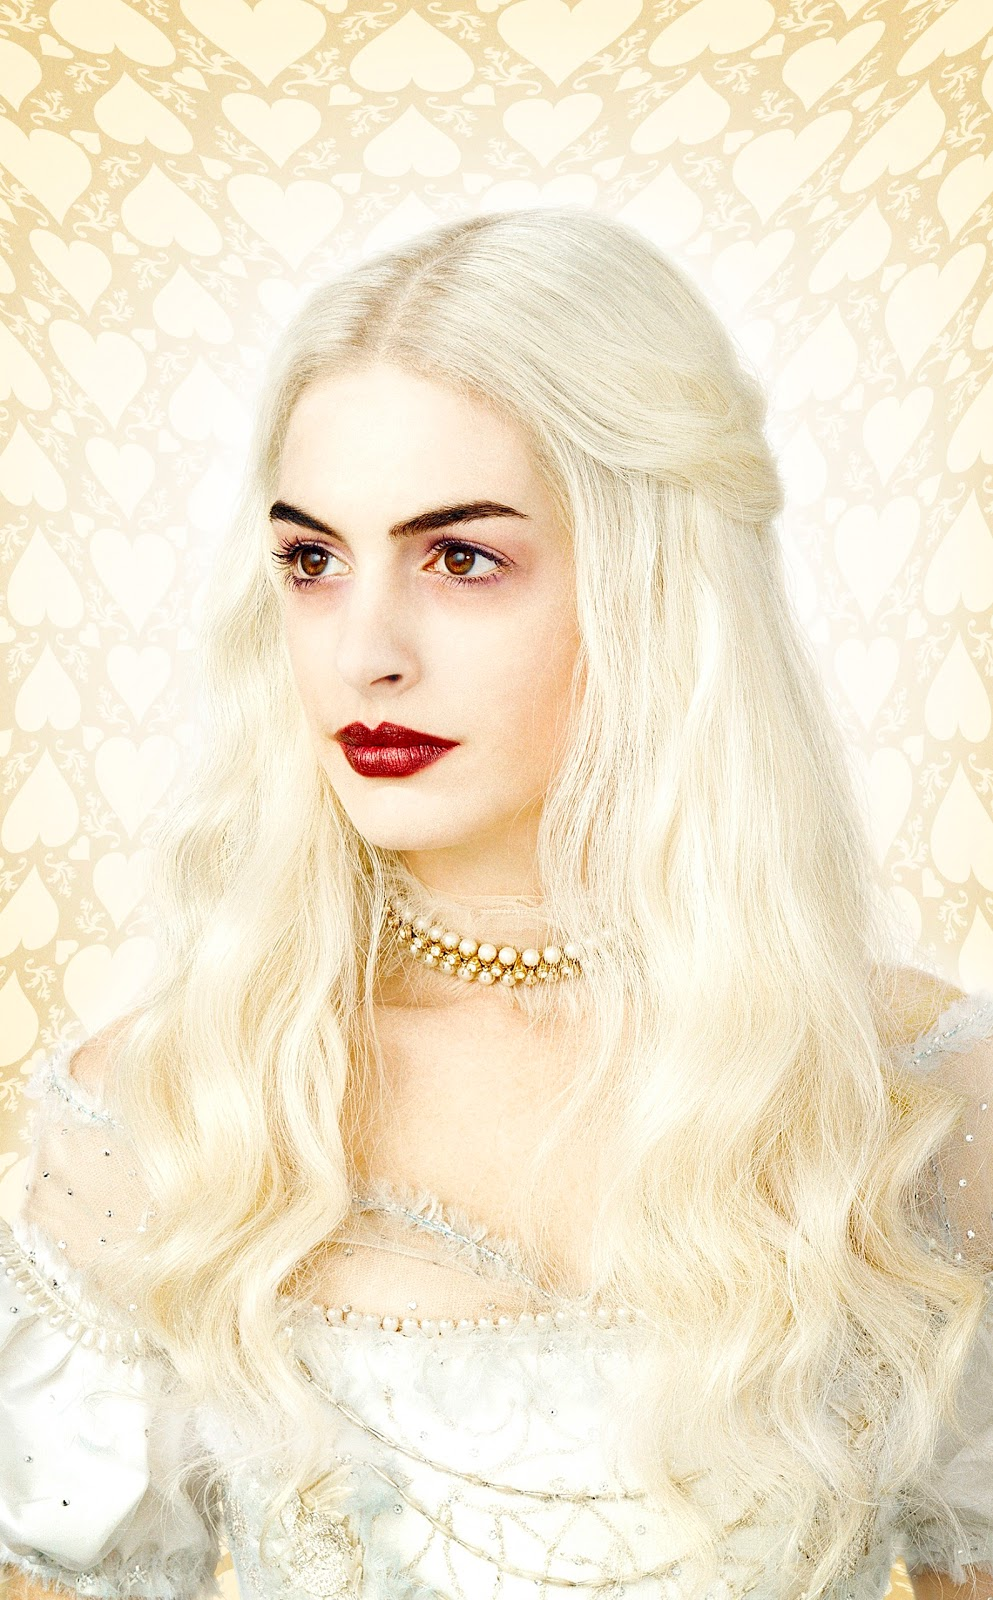 anne hathaway white queen - photo #2